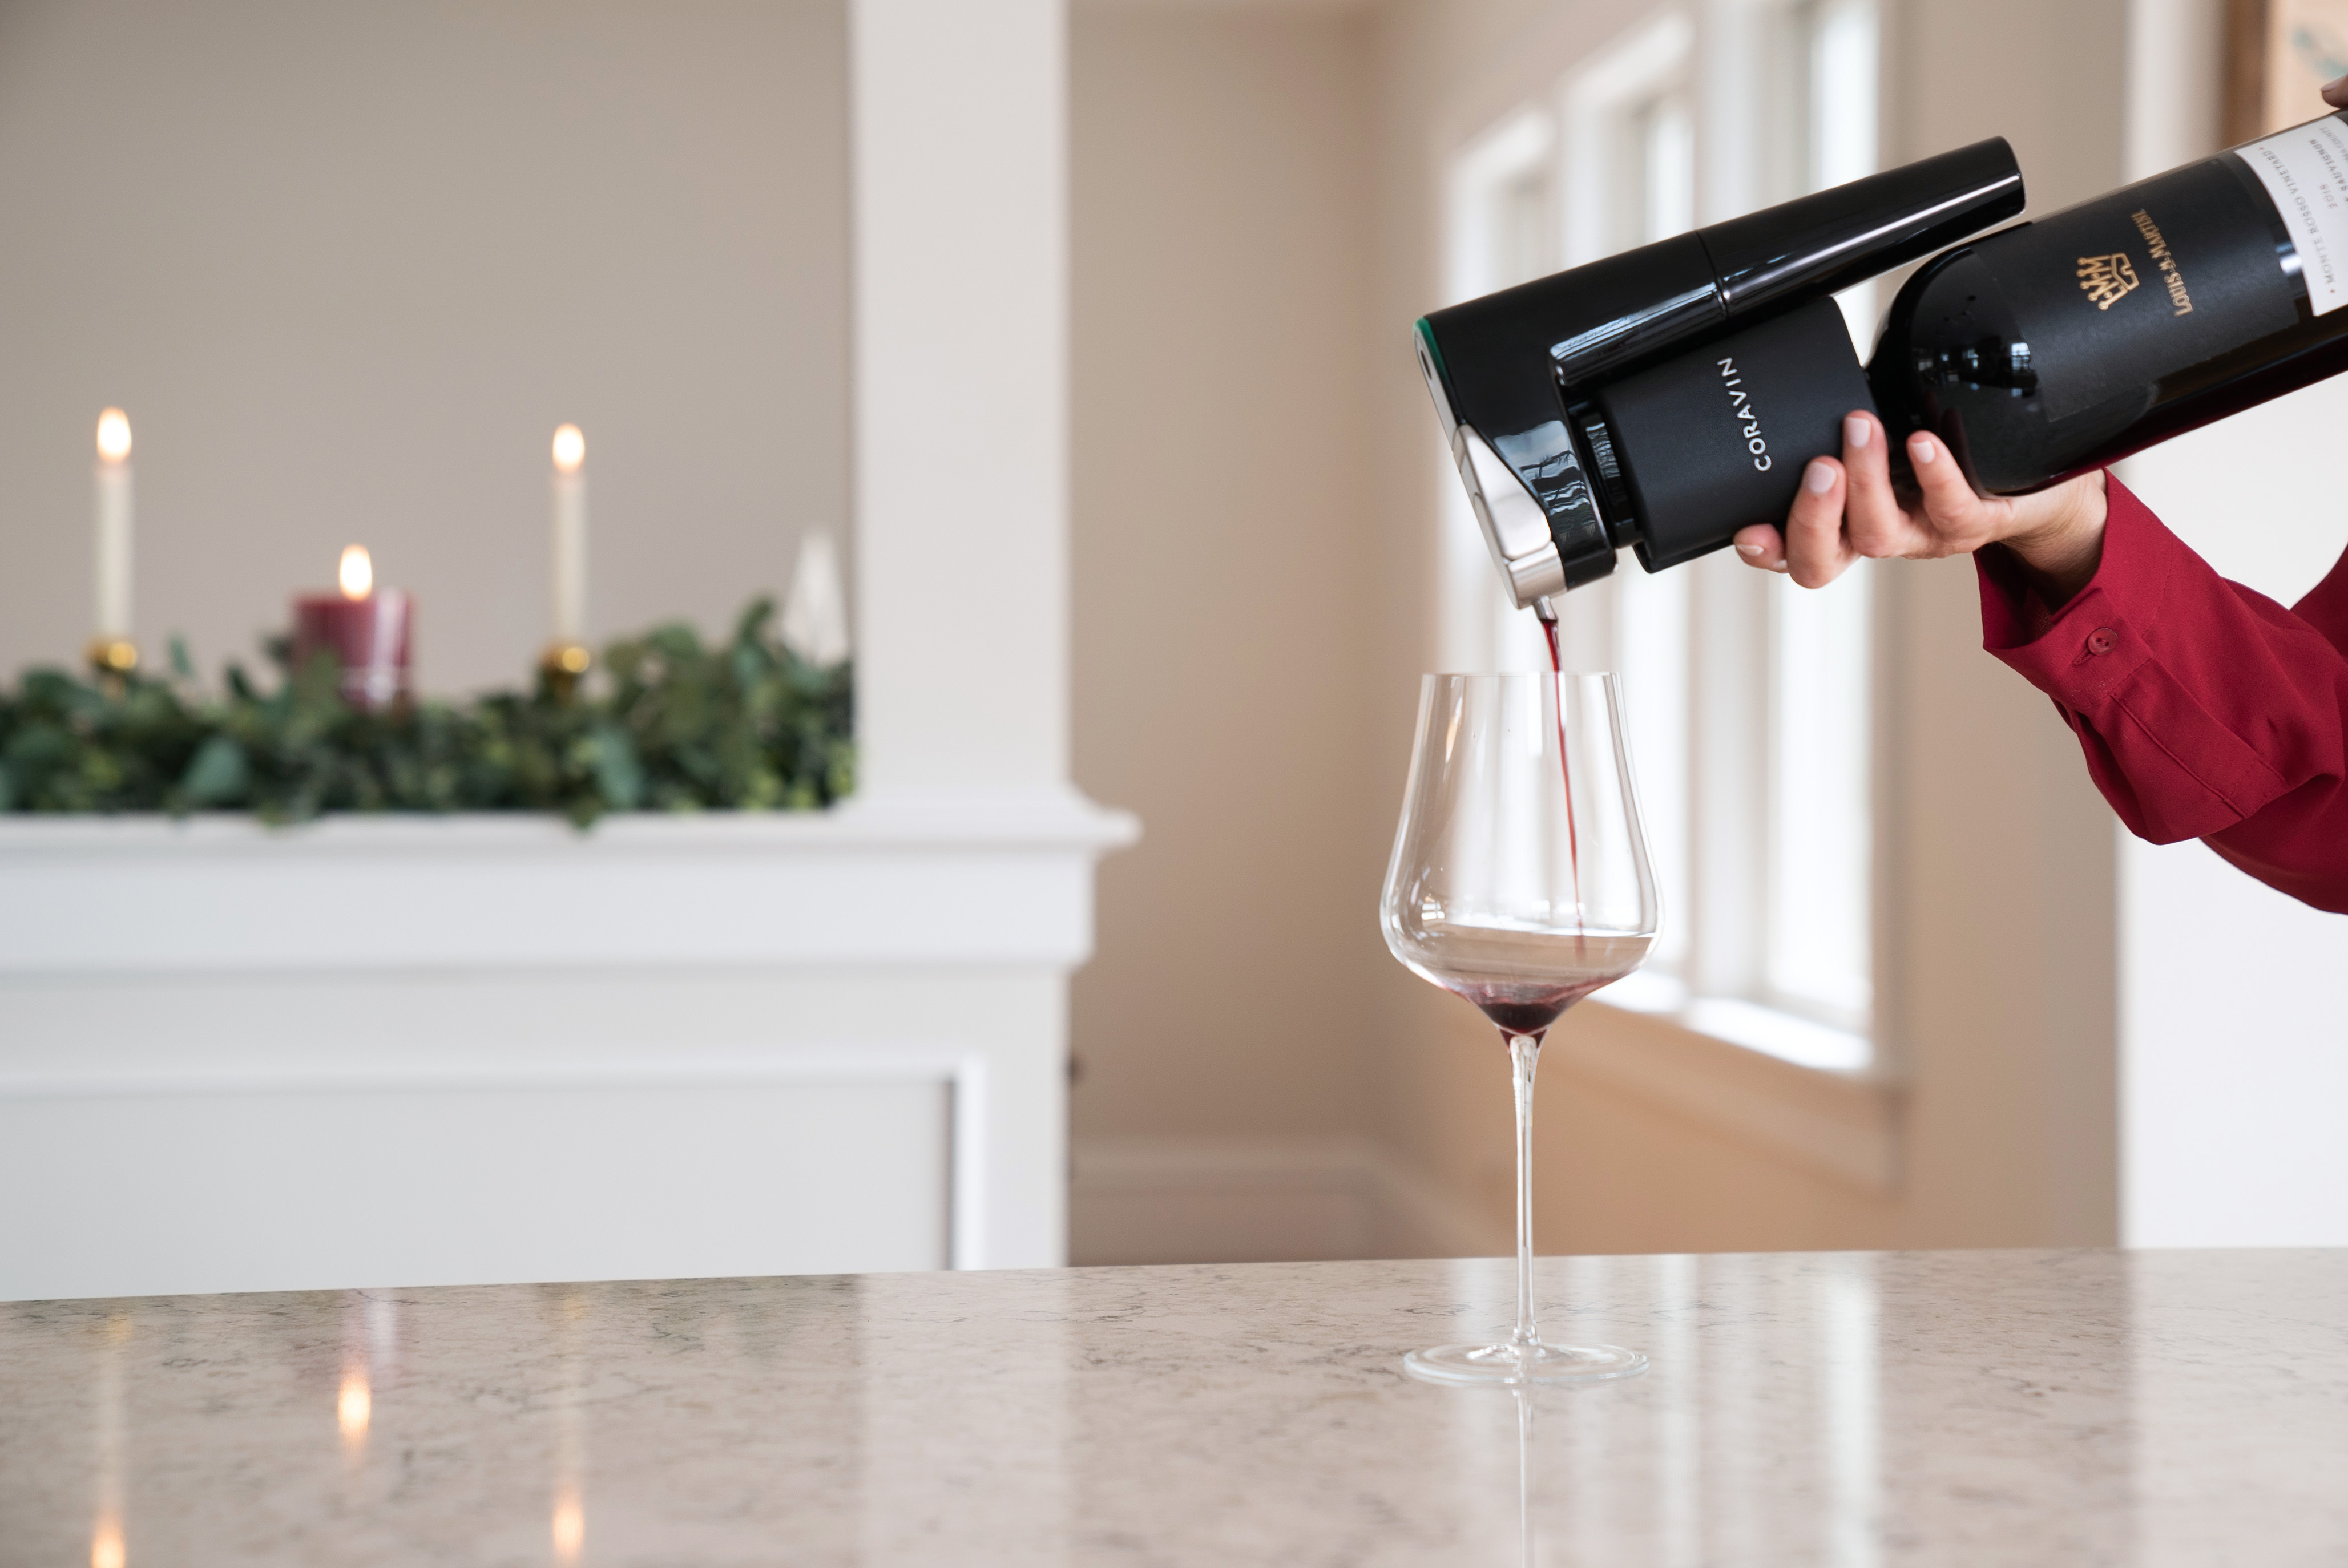 Model eleven coravin pour red wine